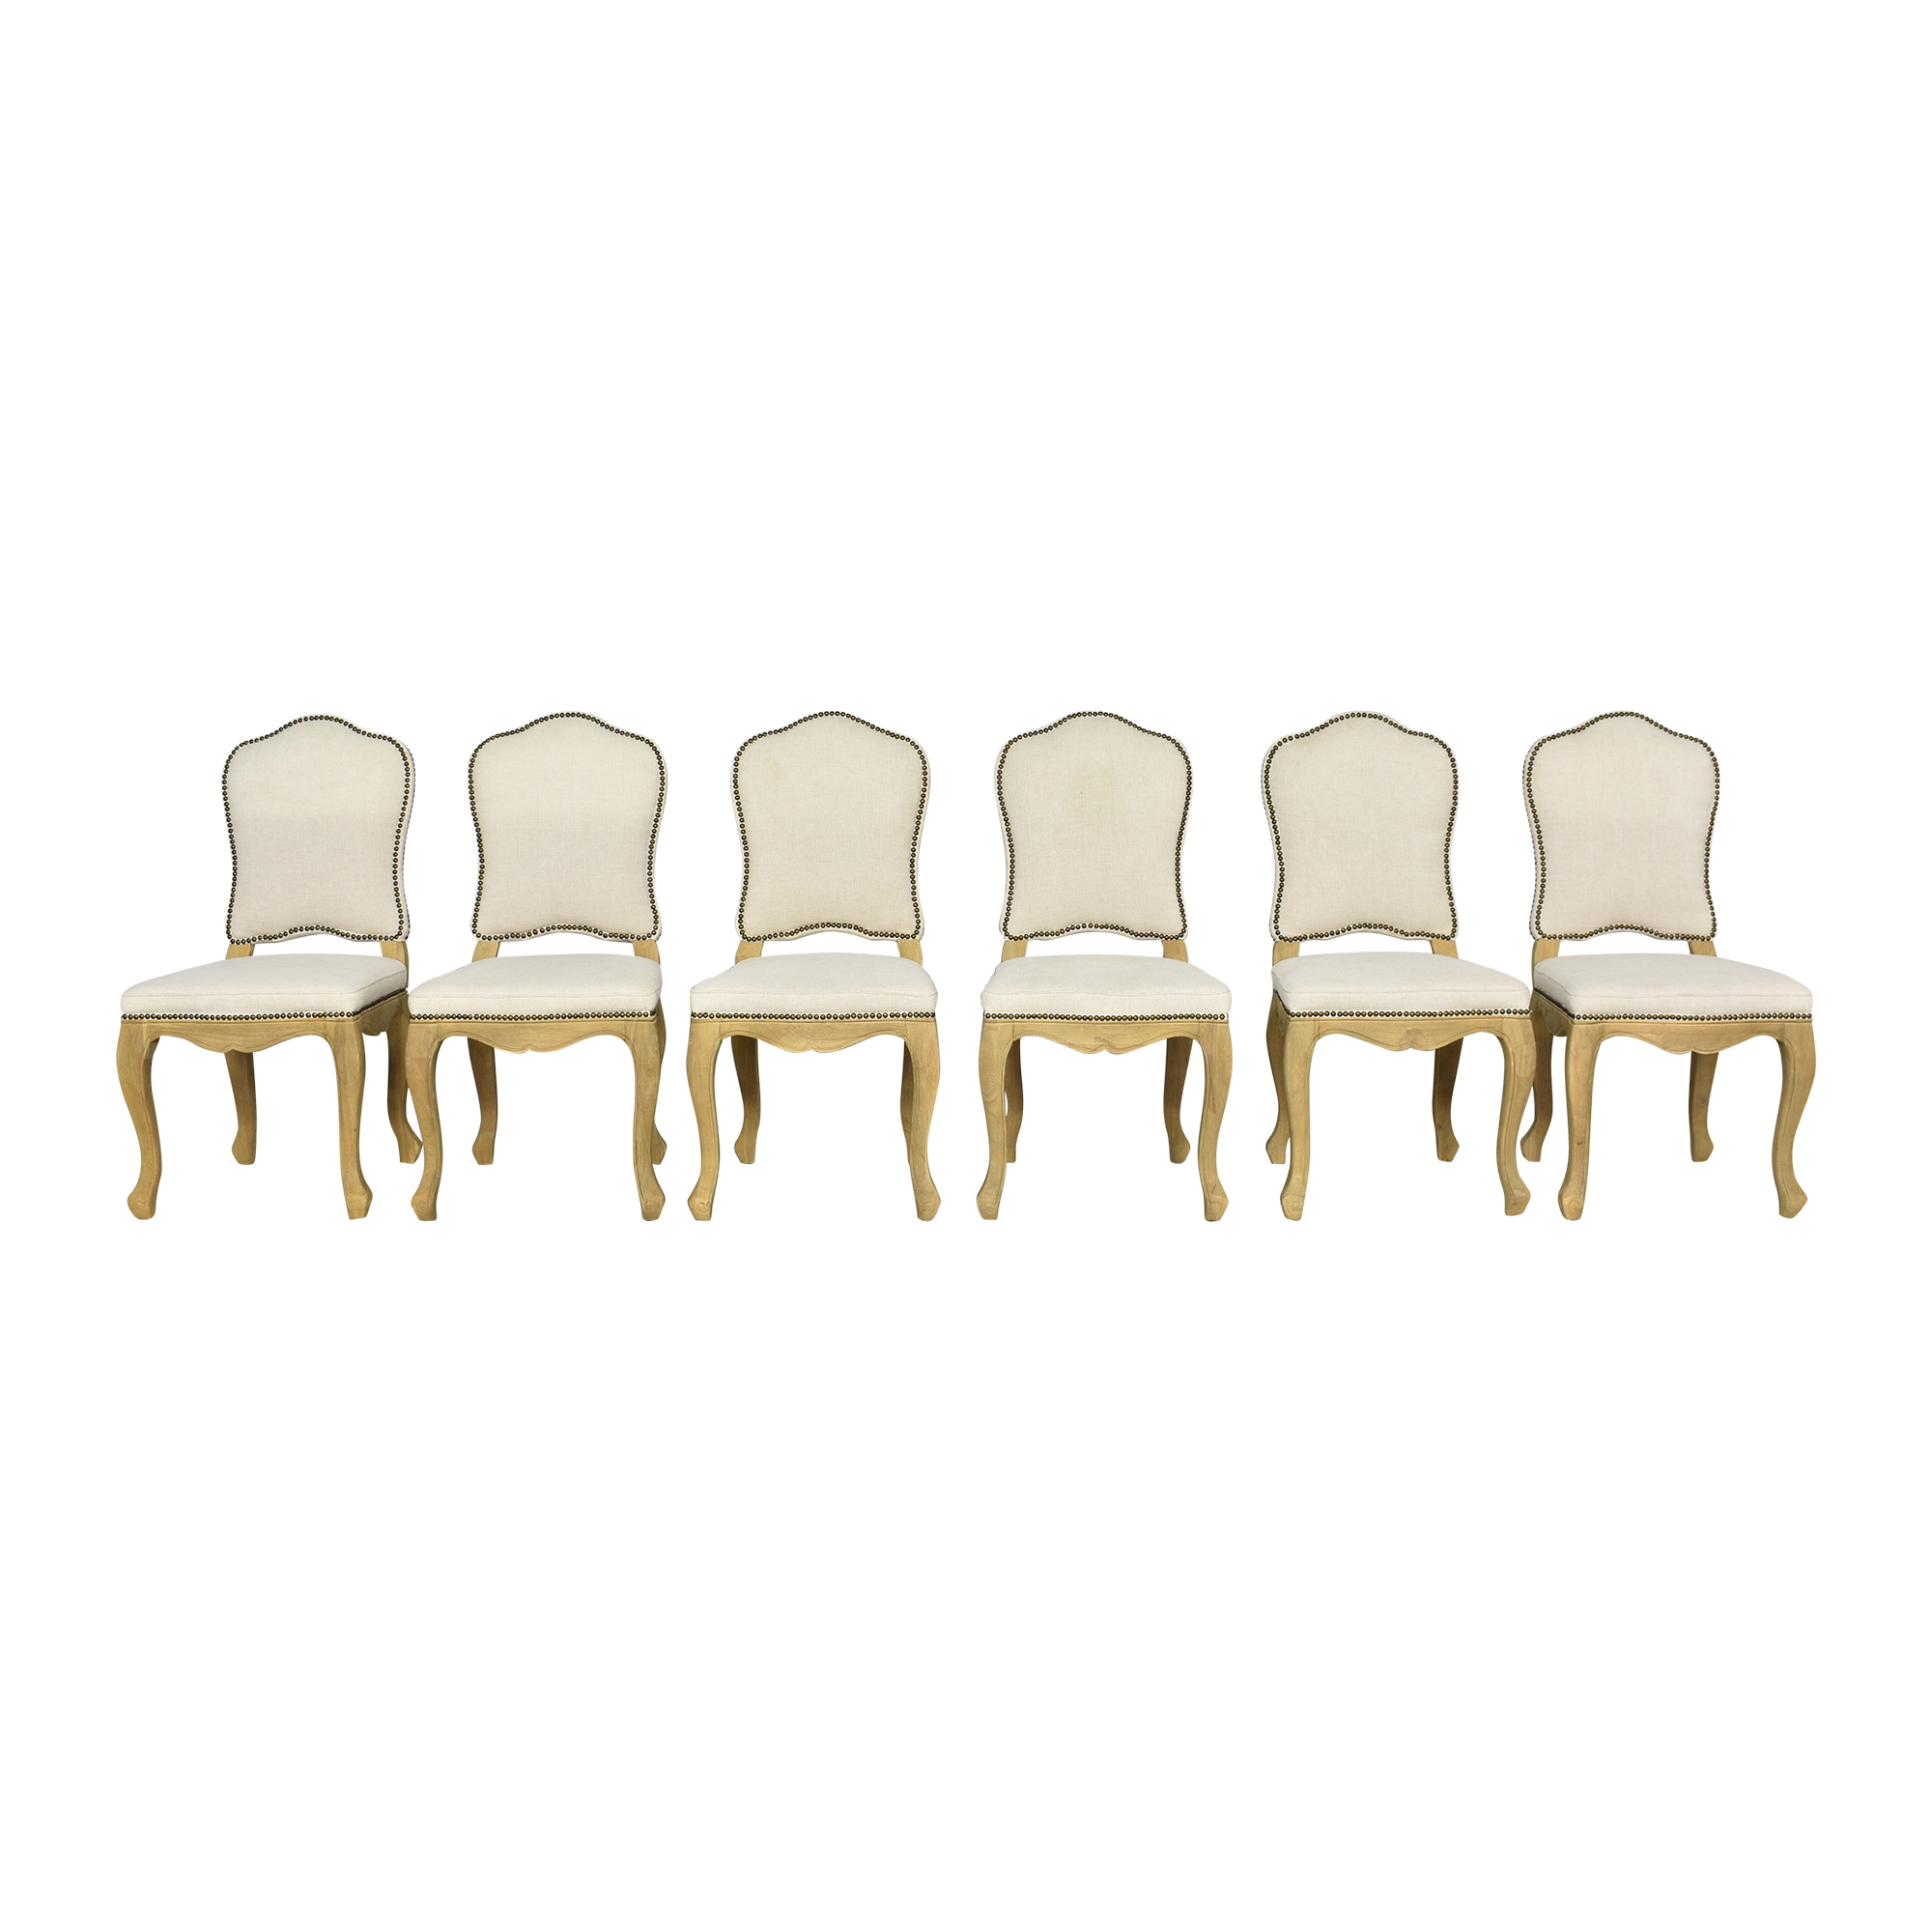 Four Hands Kensington Collection Rosalie Dining Chairs Four Hands